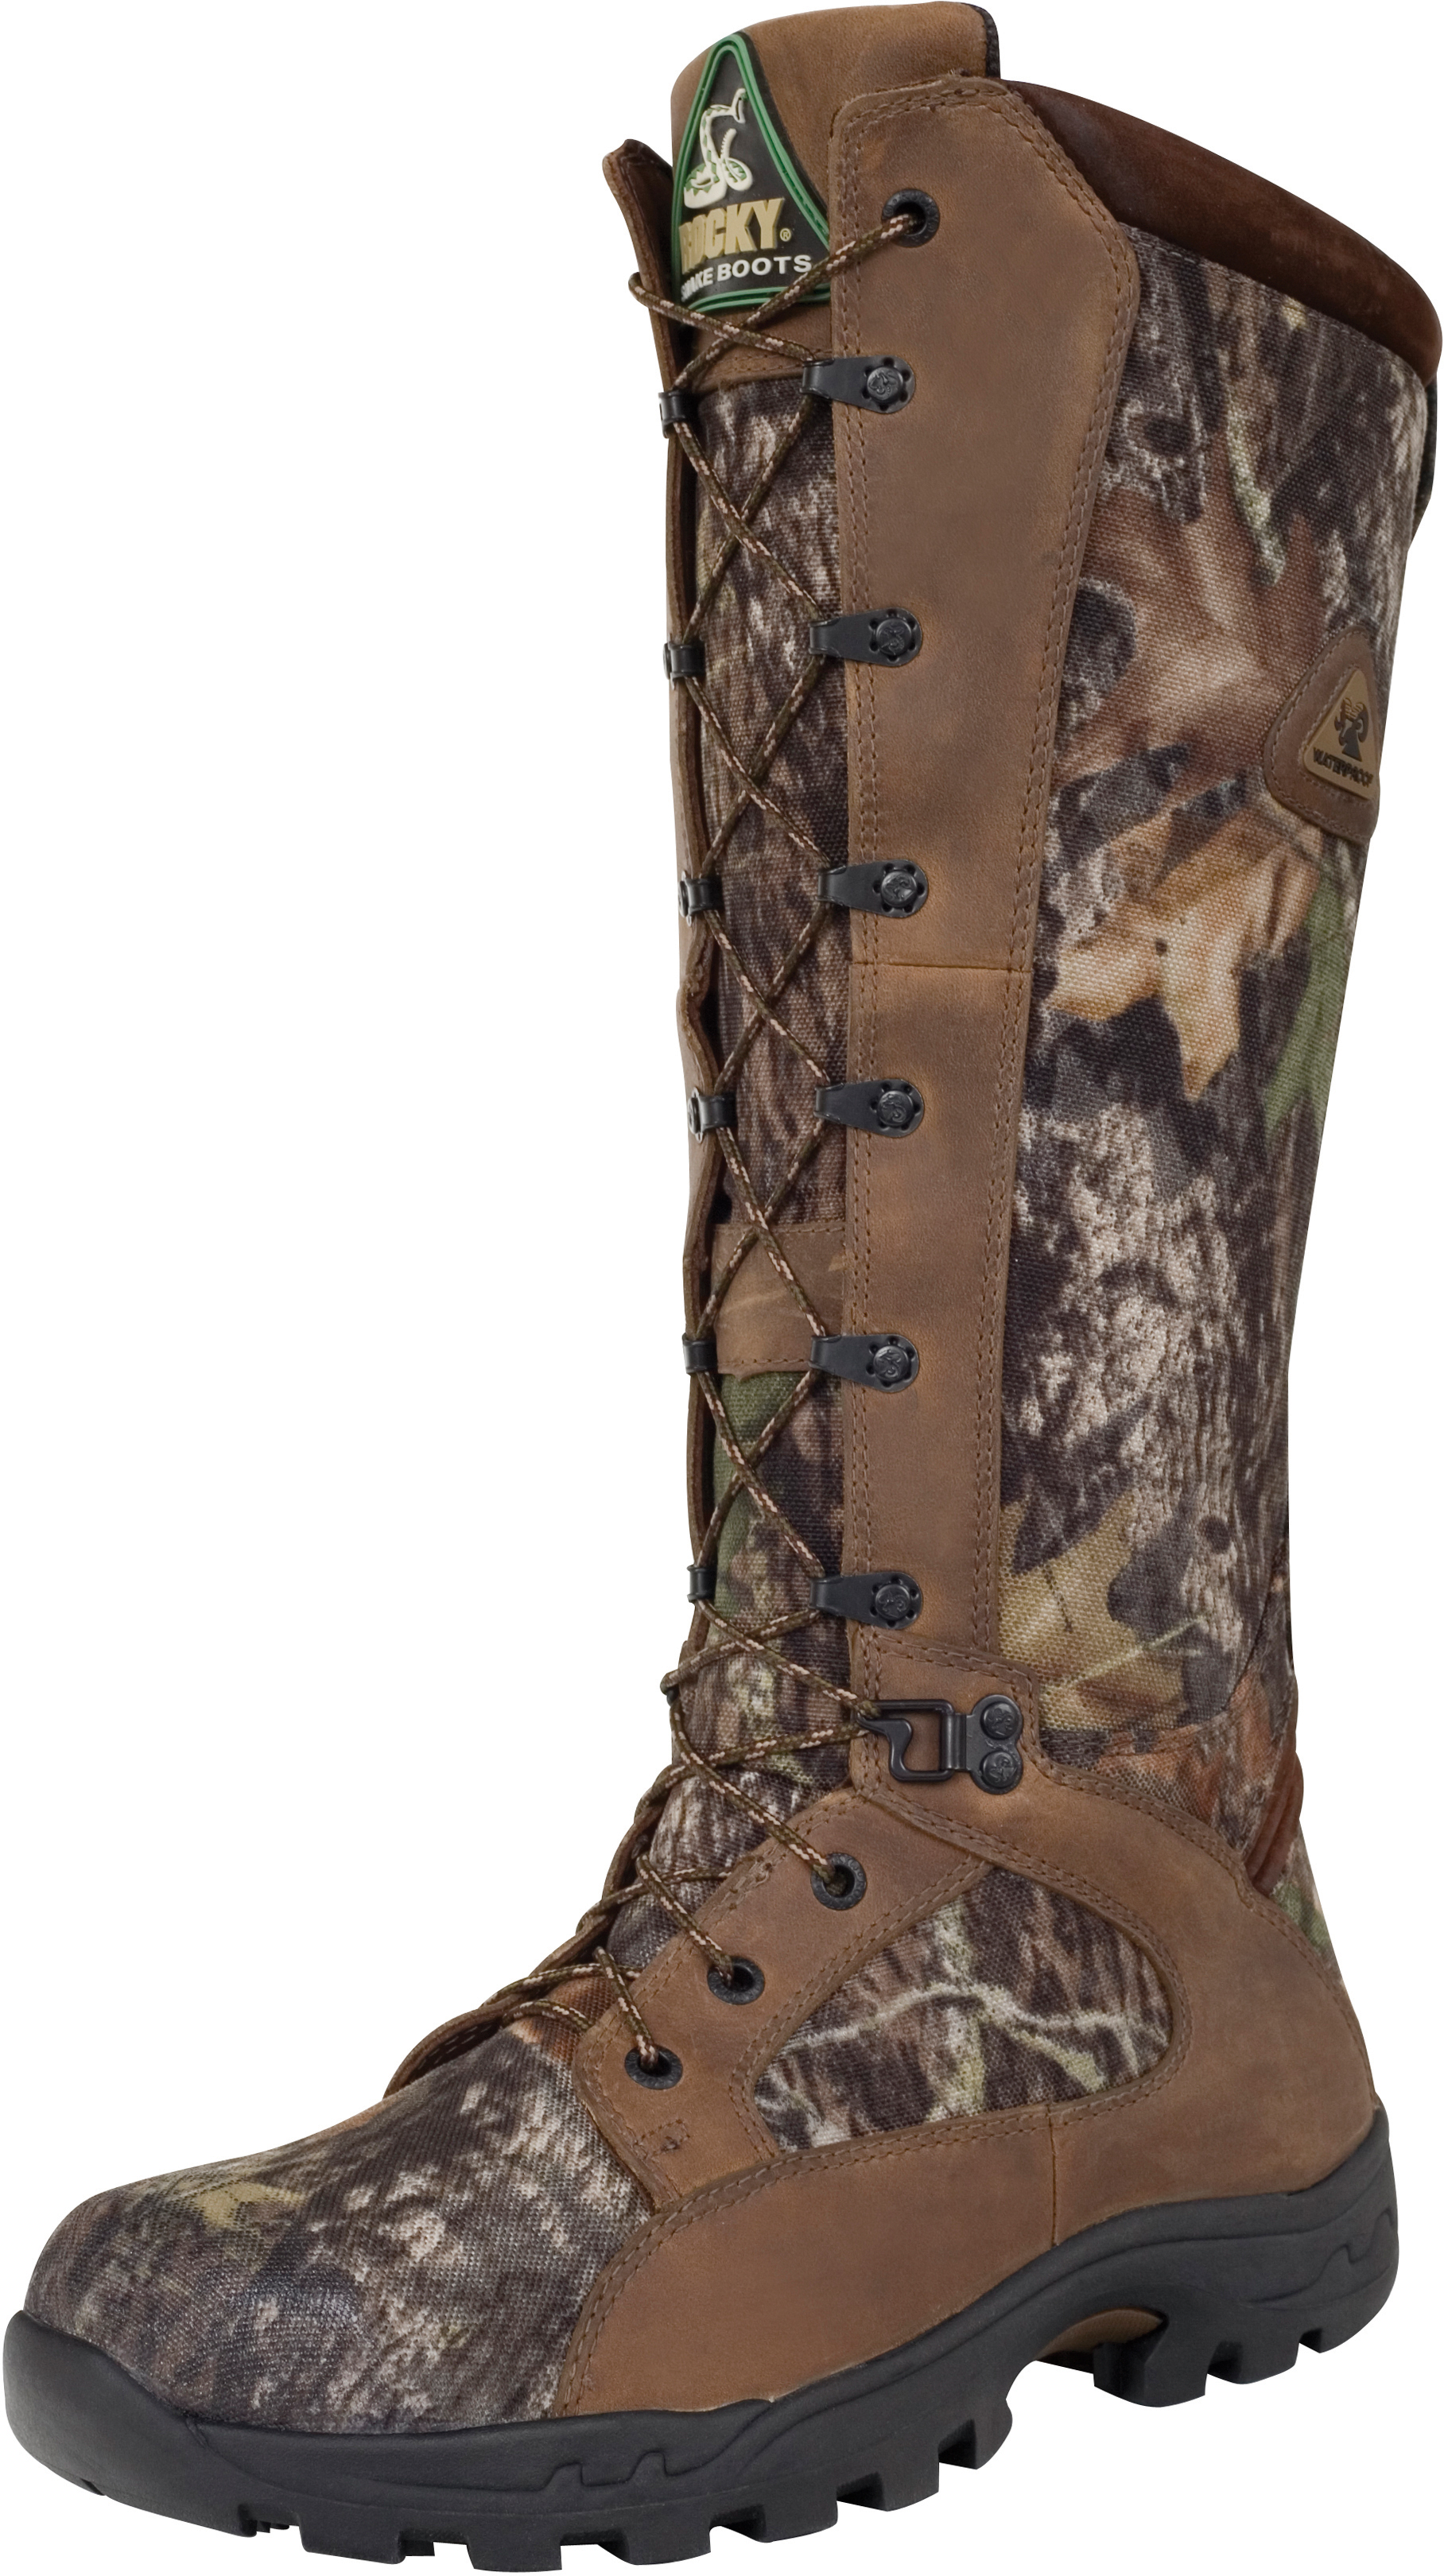 Womens Snake Proof Hunting Boots Woman Fashion